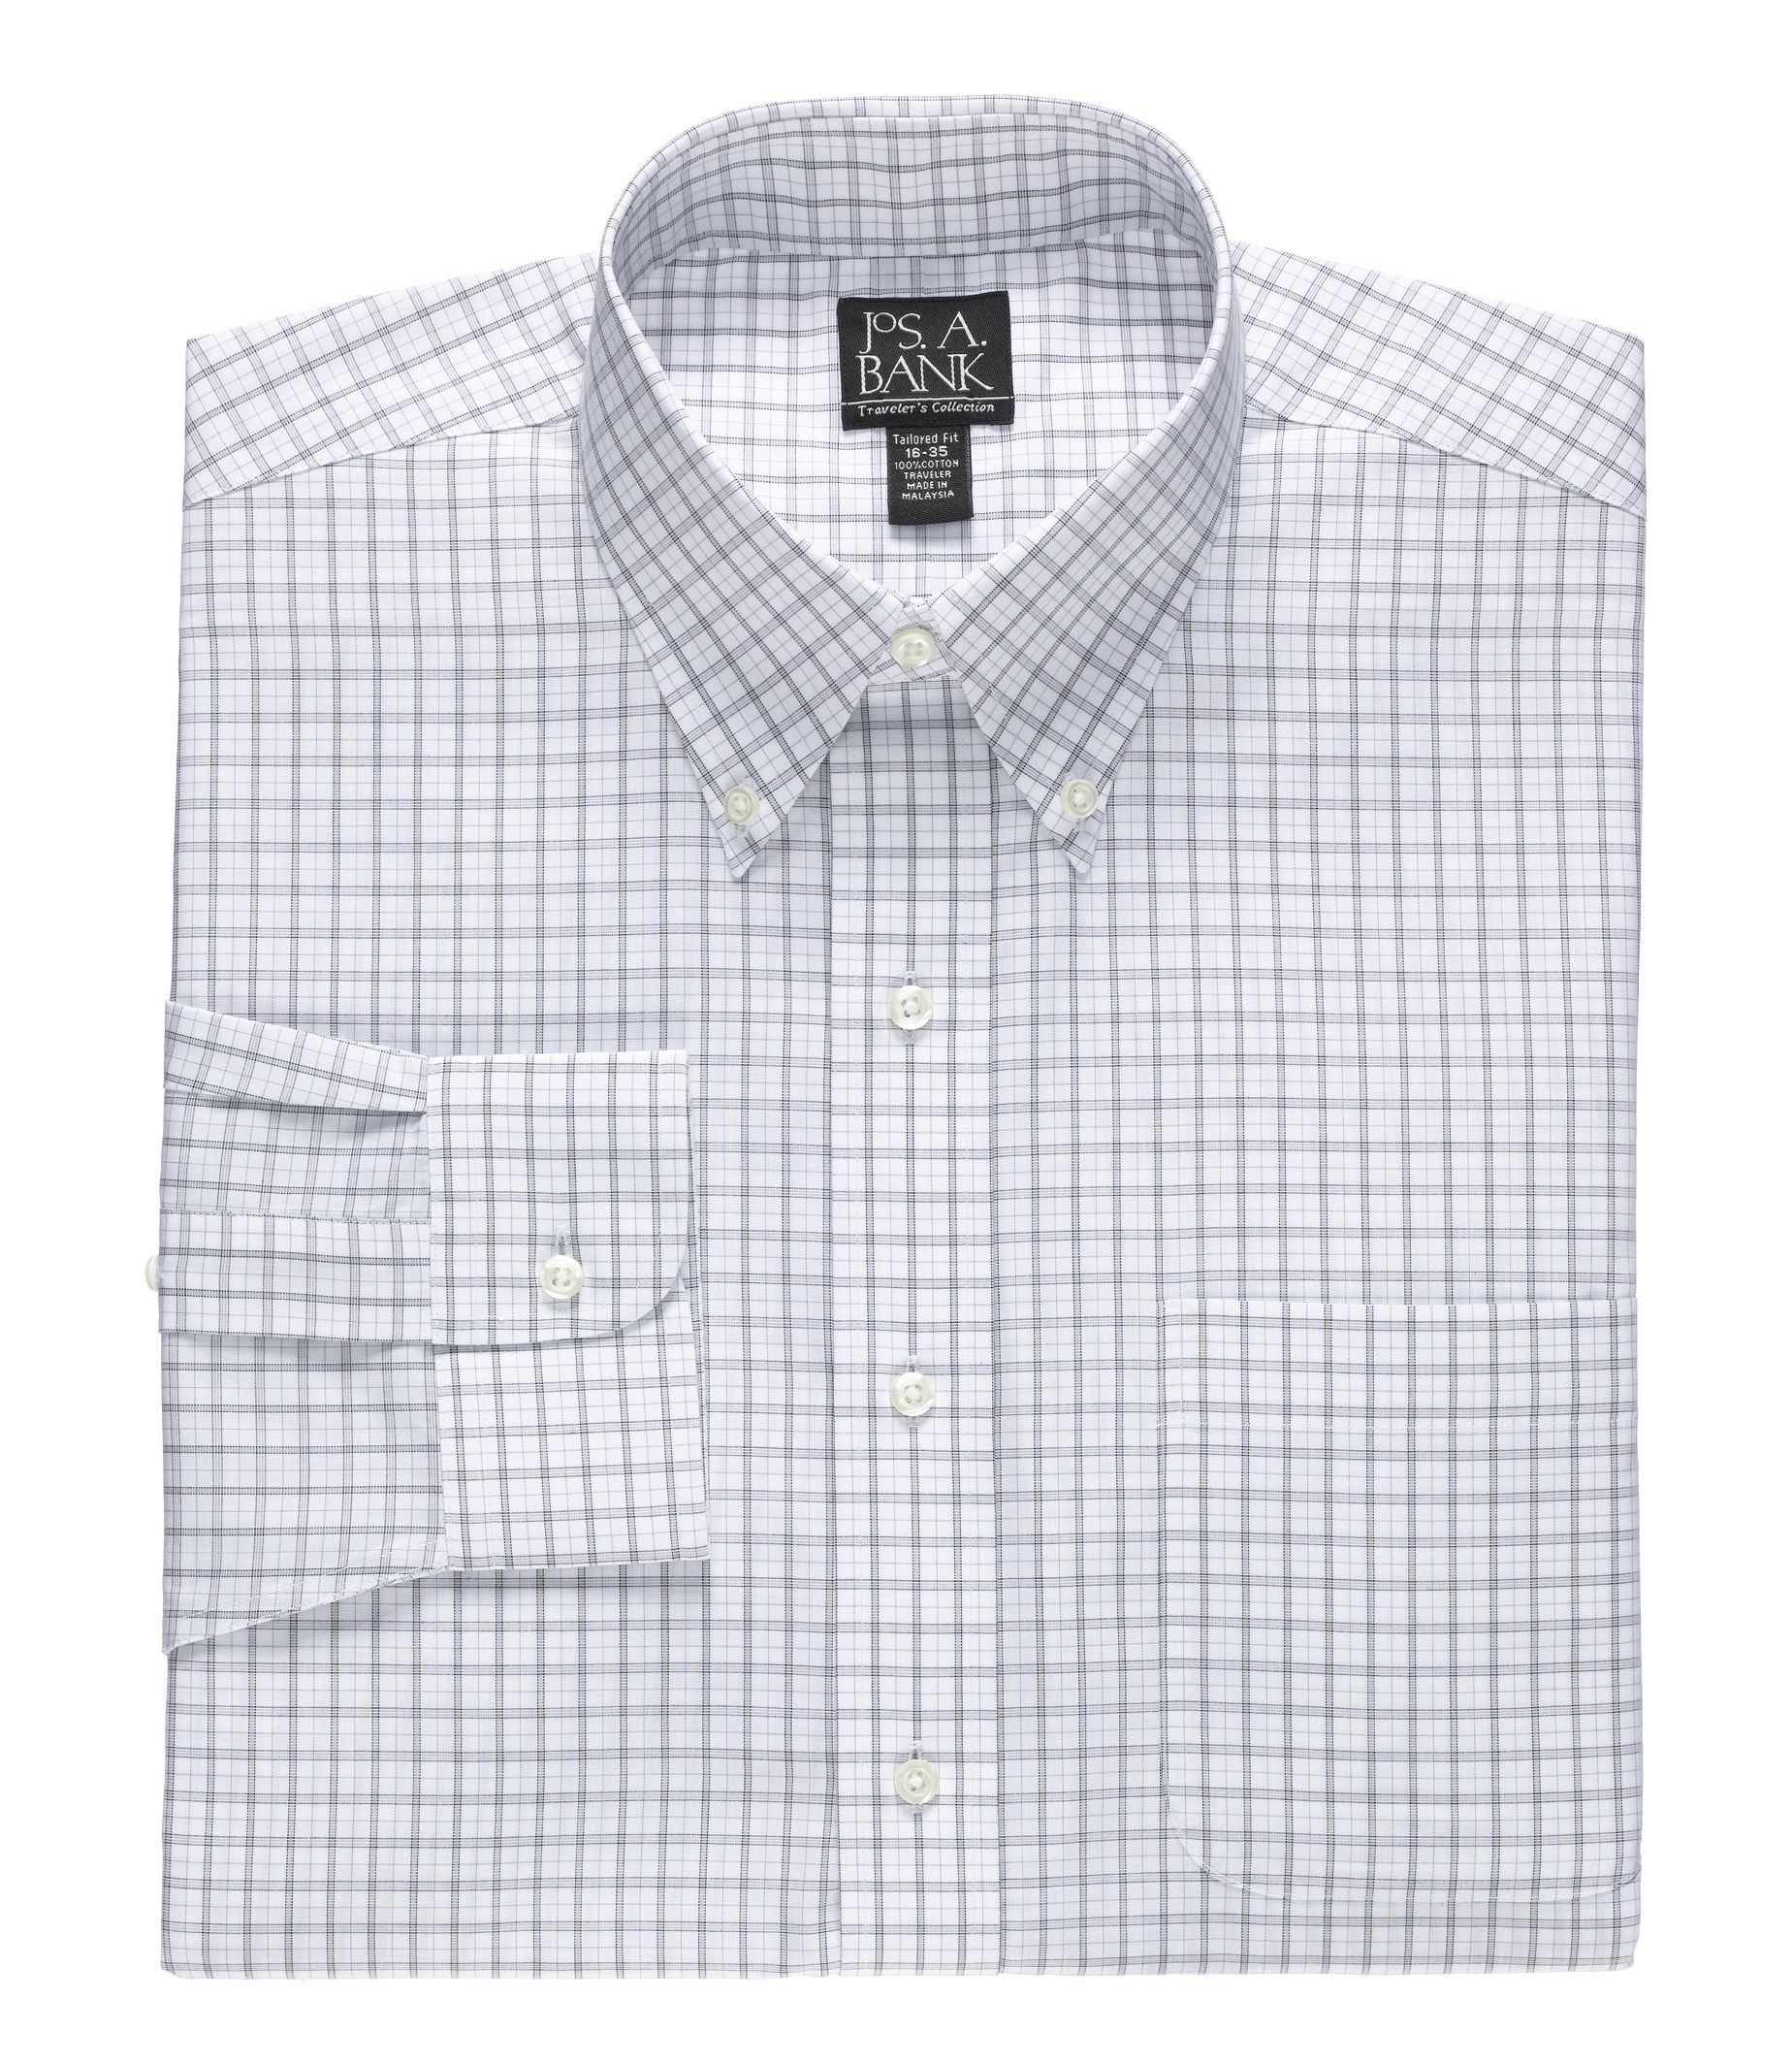 Traveler Tailored Fit Button Down Collar Patterned Dress Shirt